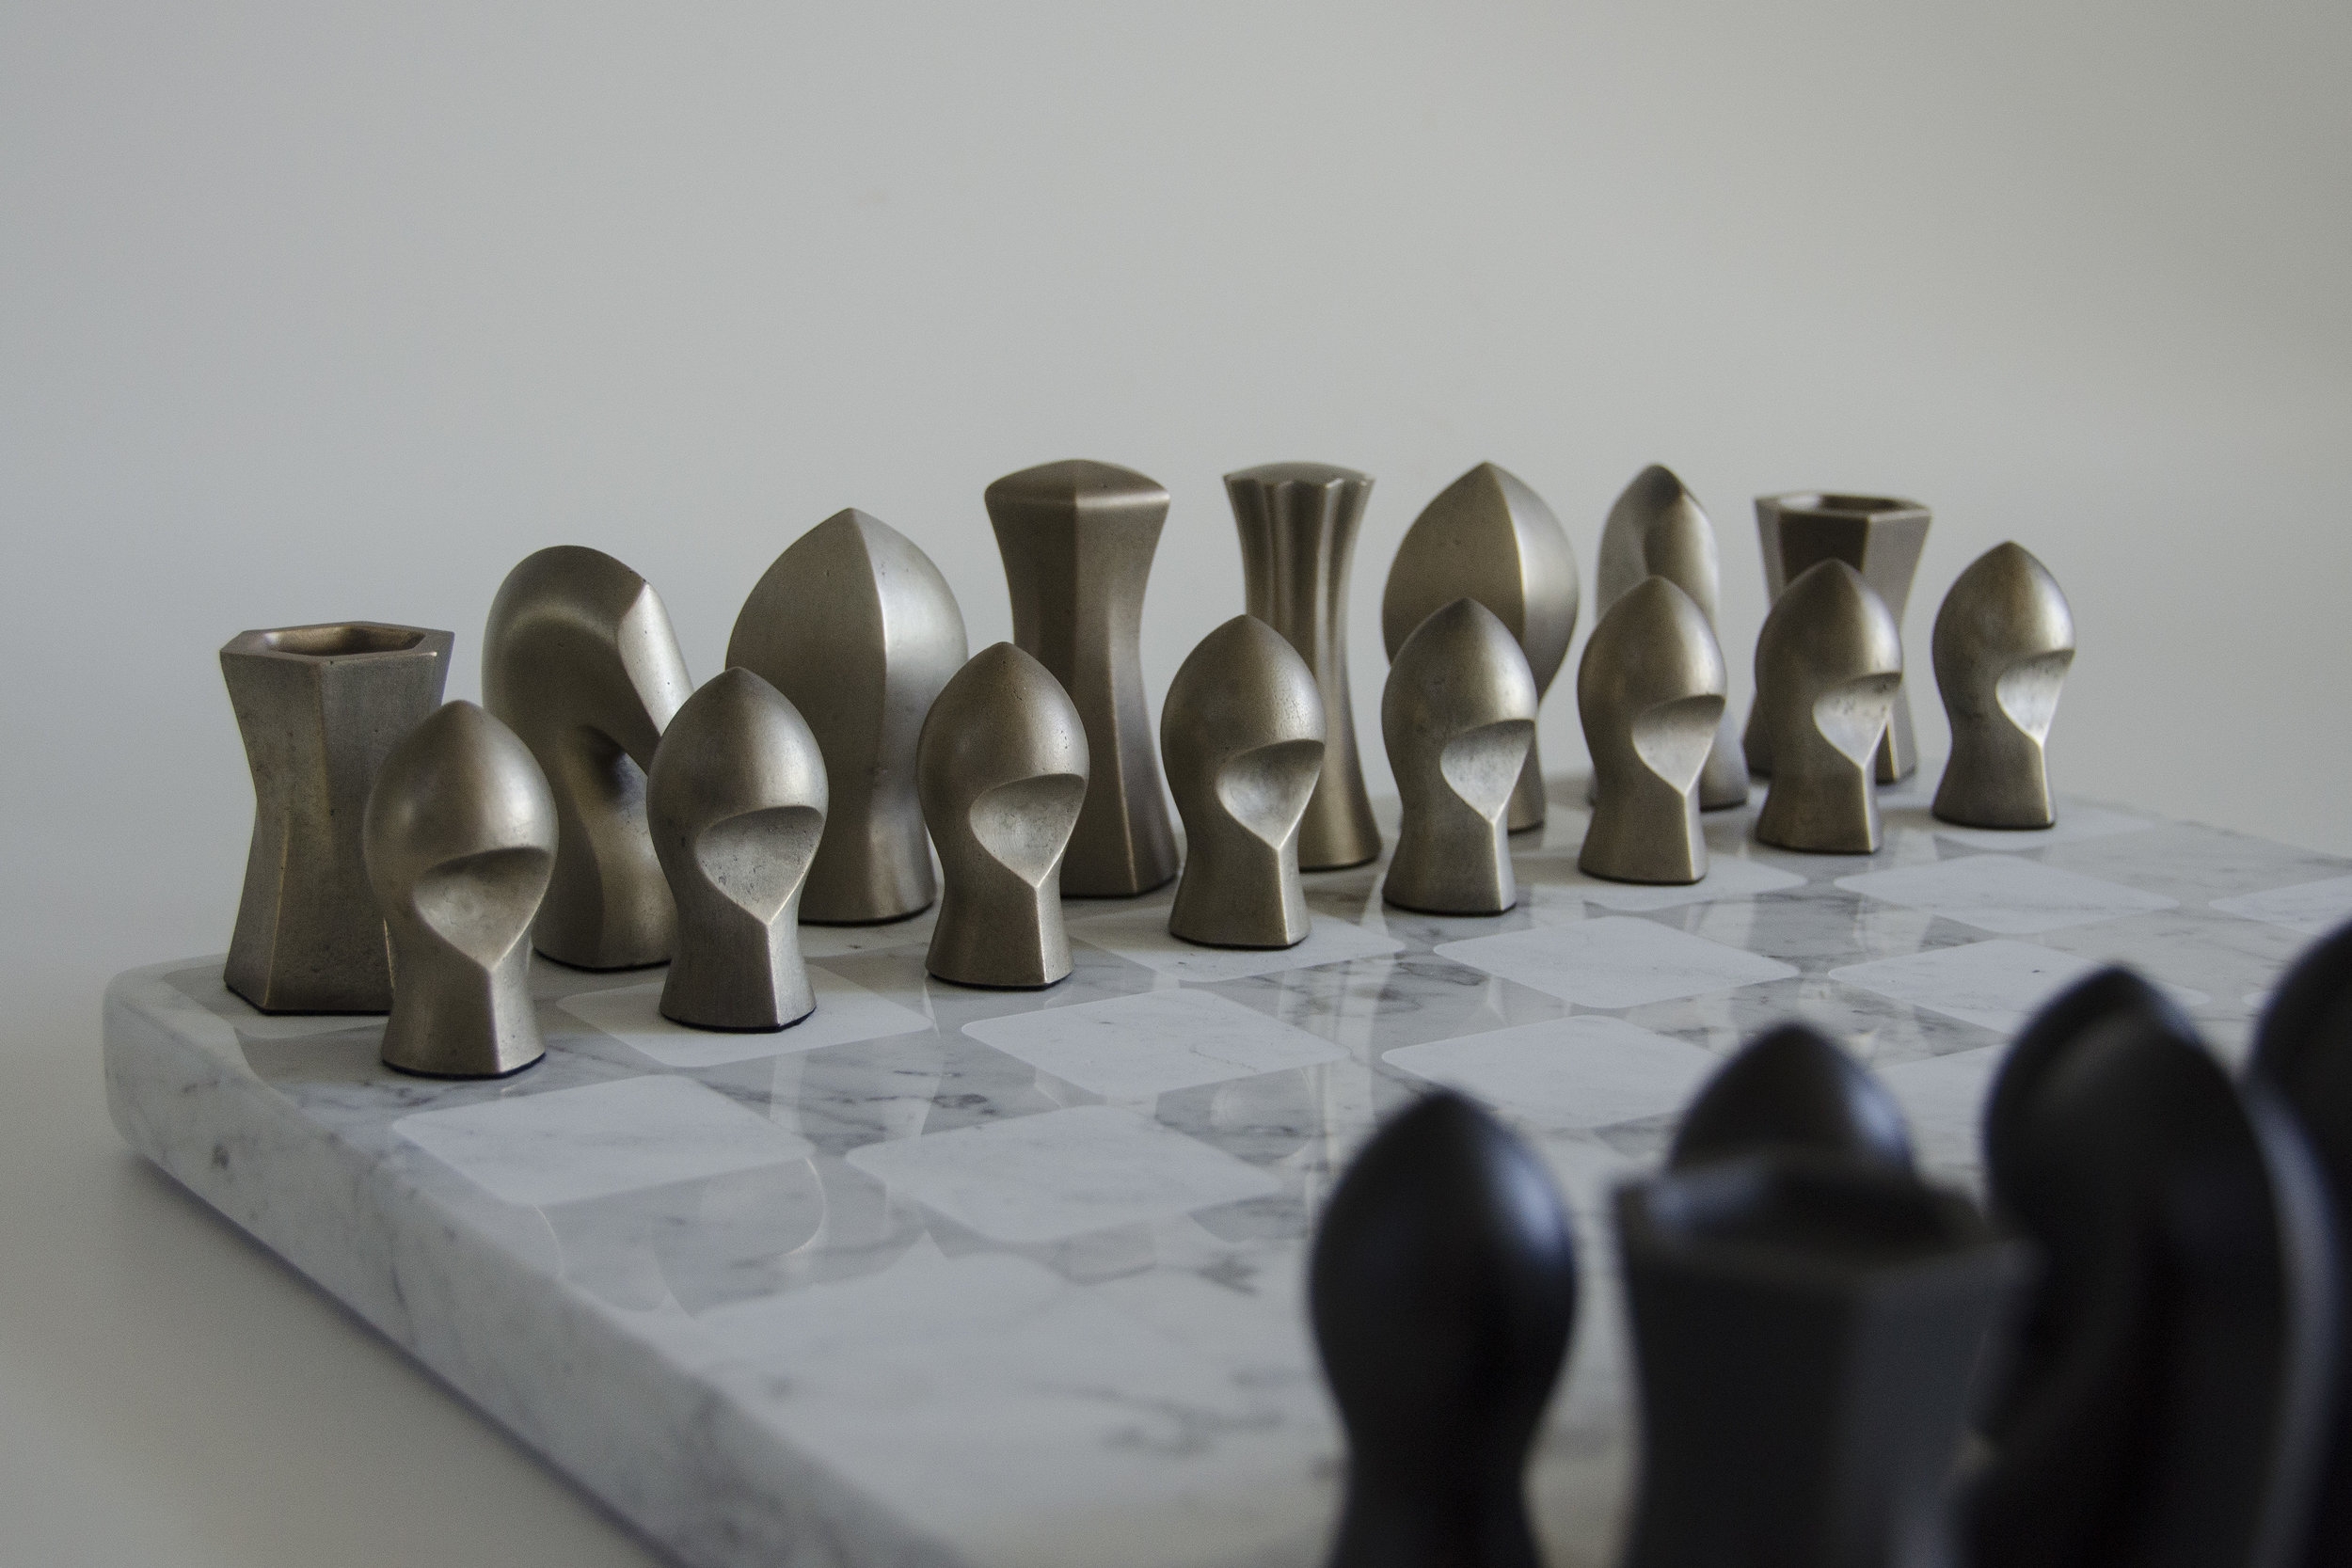 Chess Army5.jpg